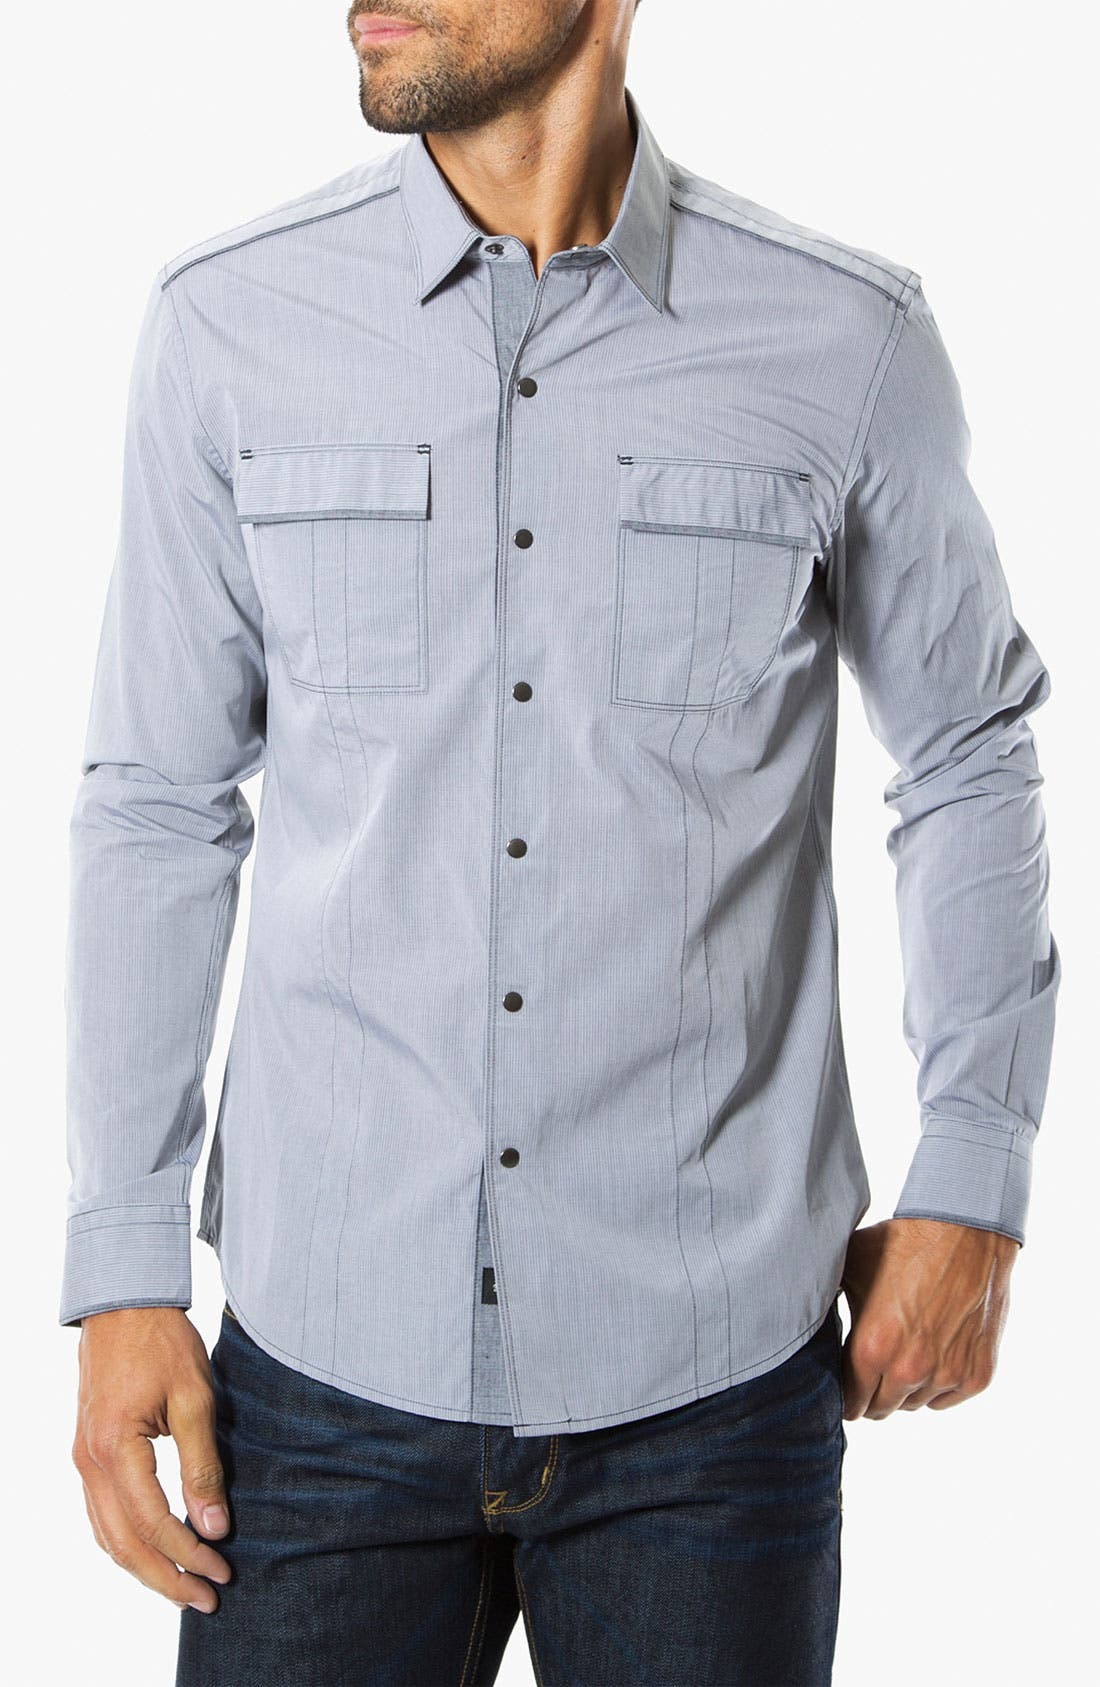 'Shades of Grey' Woven Sport Shirt,                             Main thumbnail 1, color,                             Grey